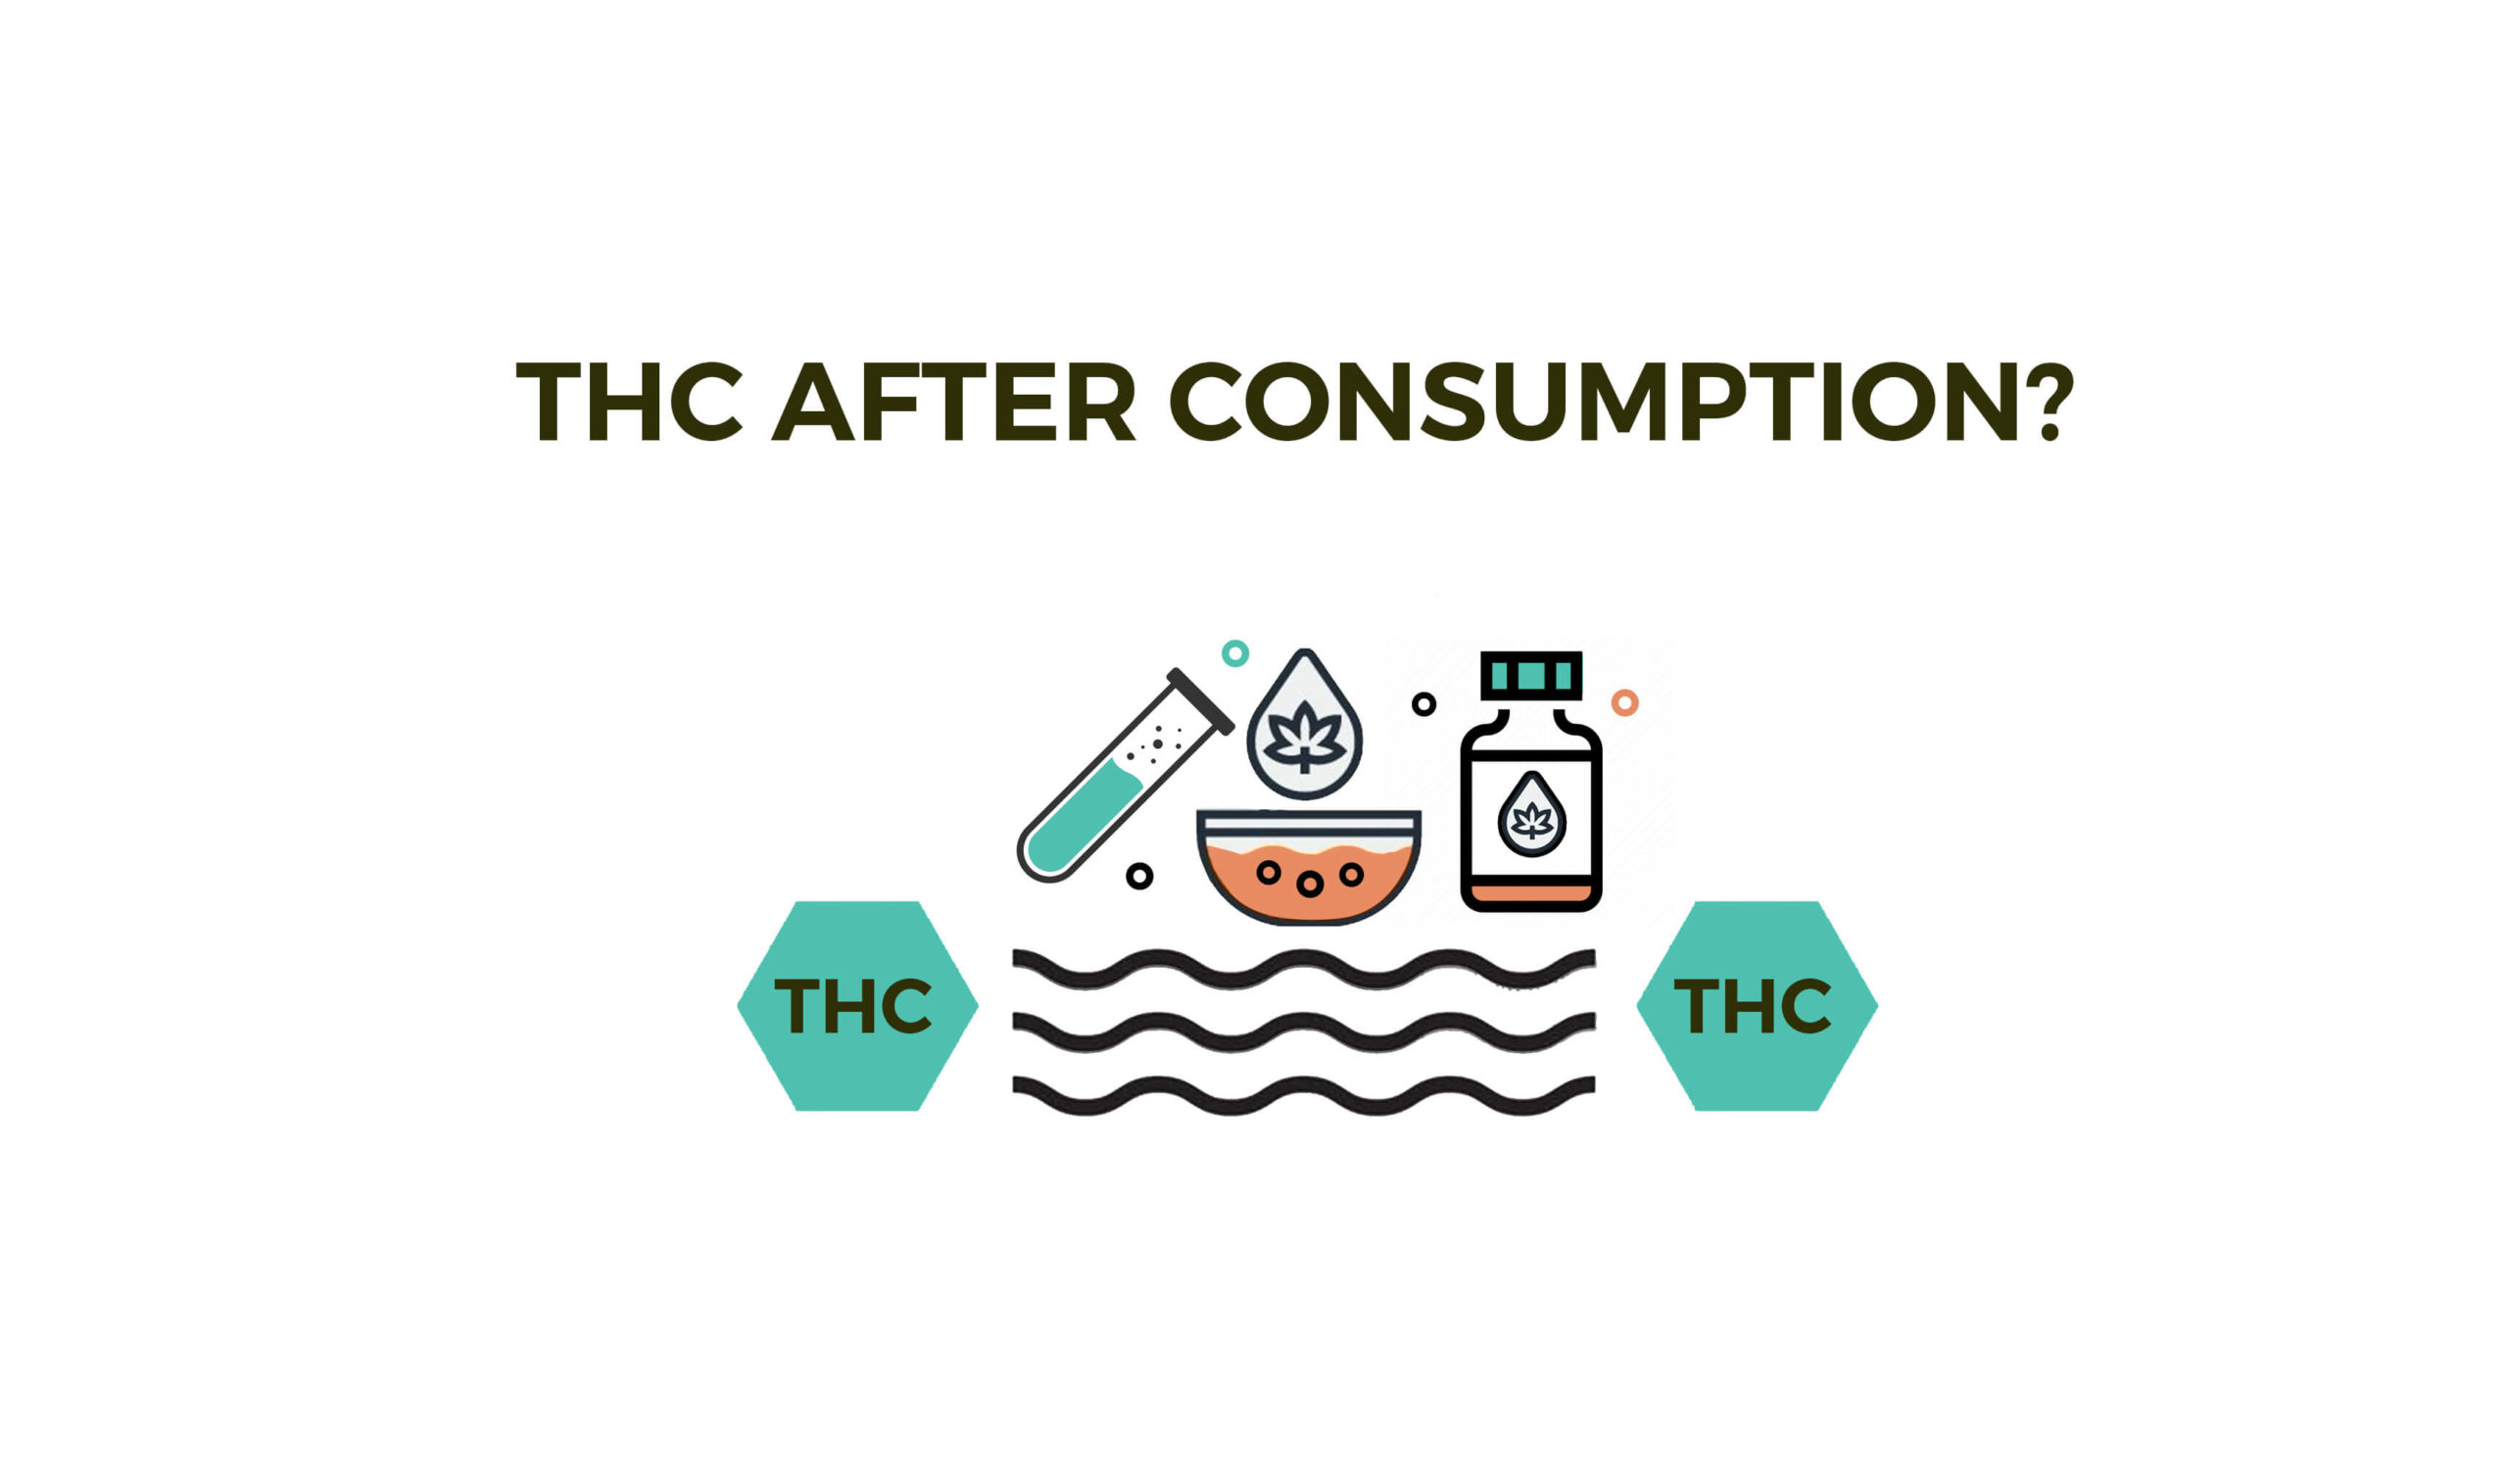 What Happens To THC After Consumption